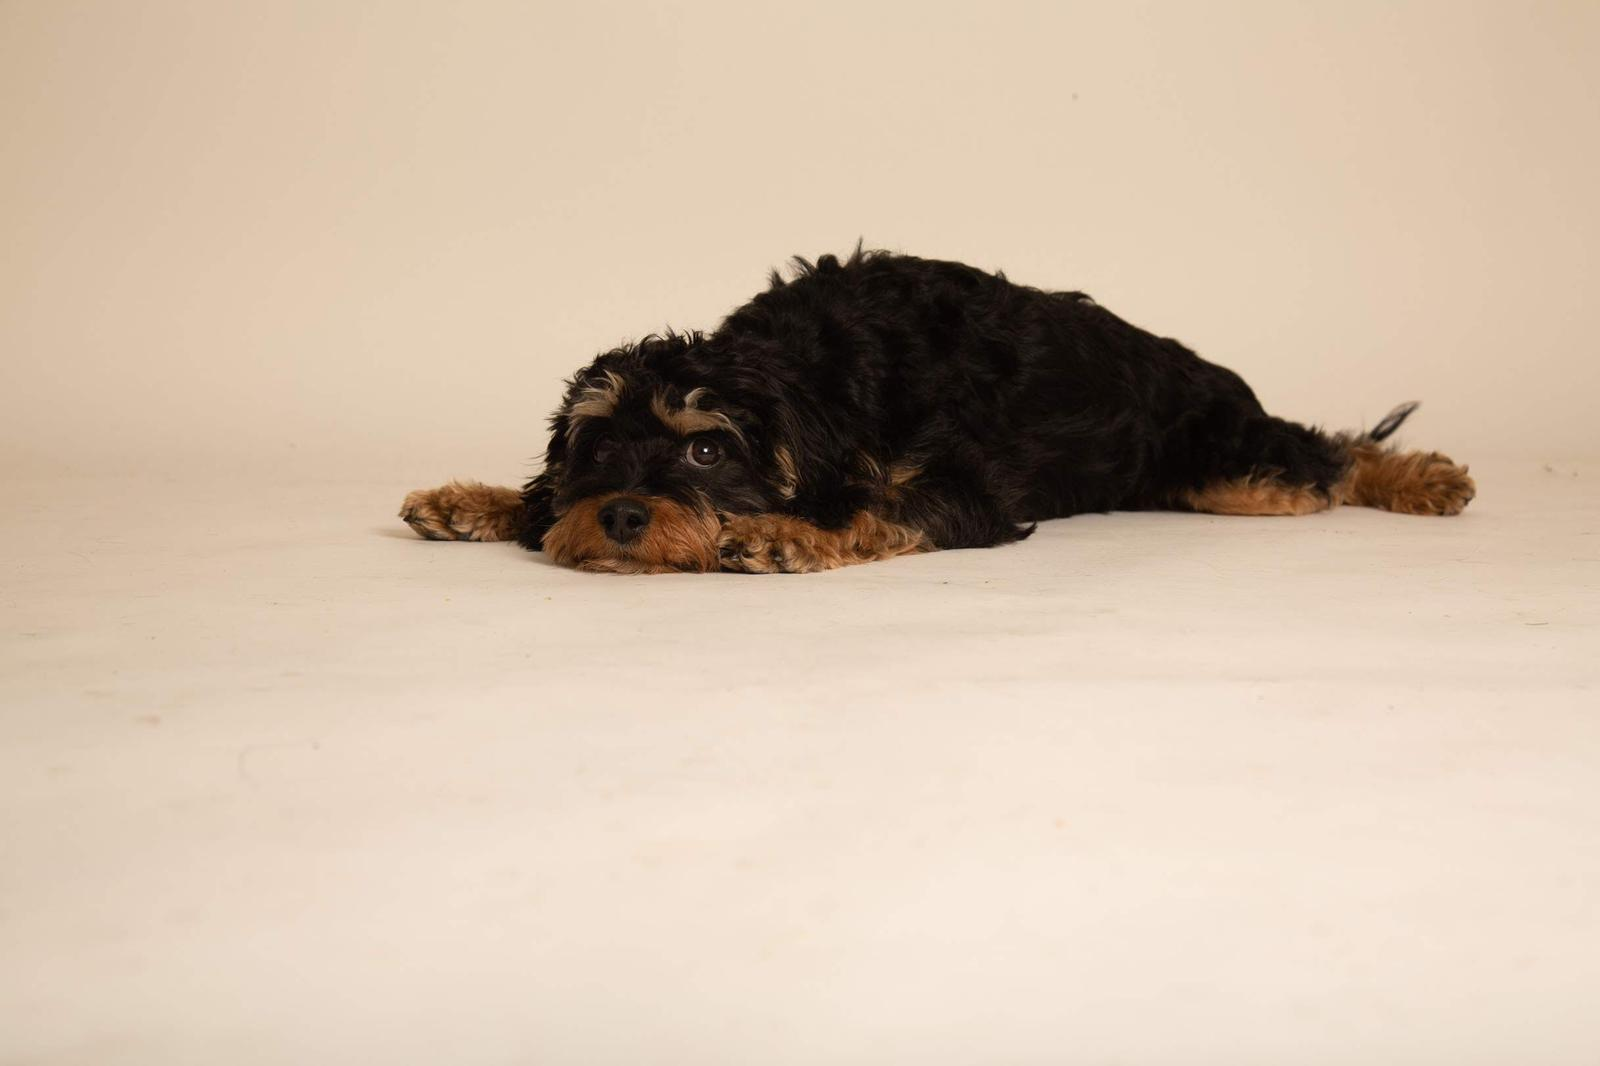 Baboy AKA @dogwithsign (cavapoo) shows off her adorable chin rest